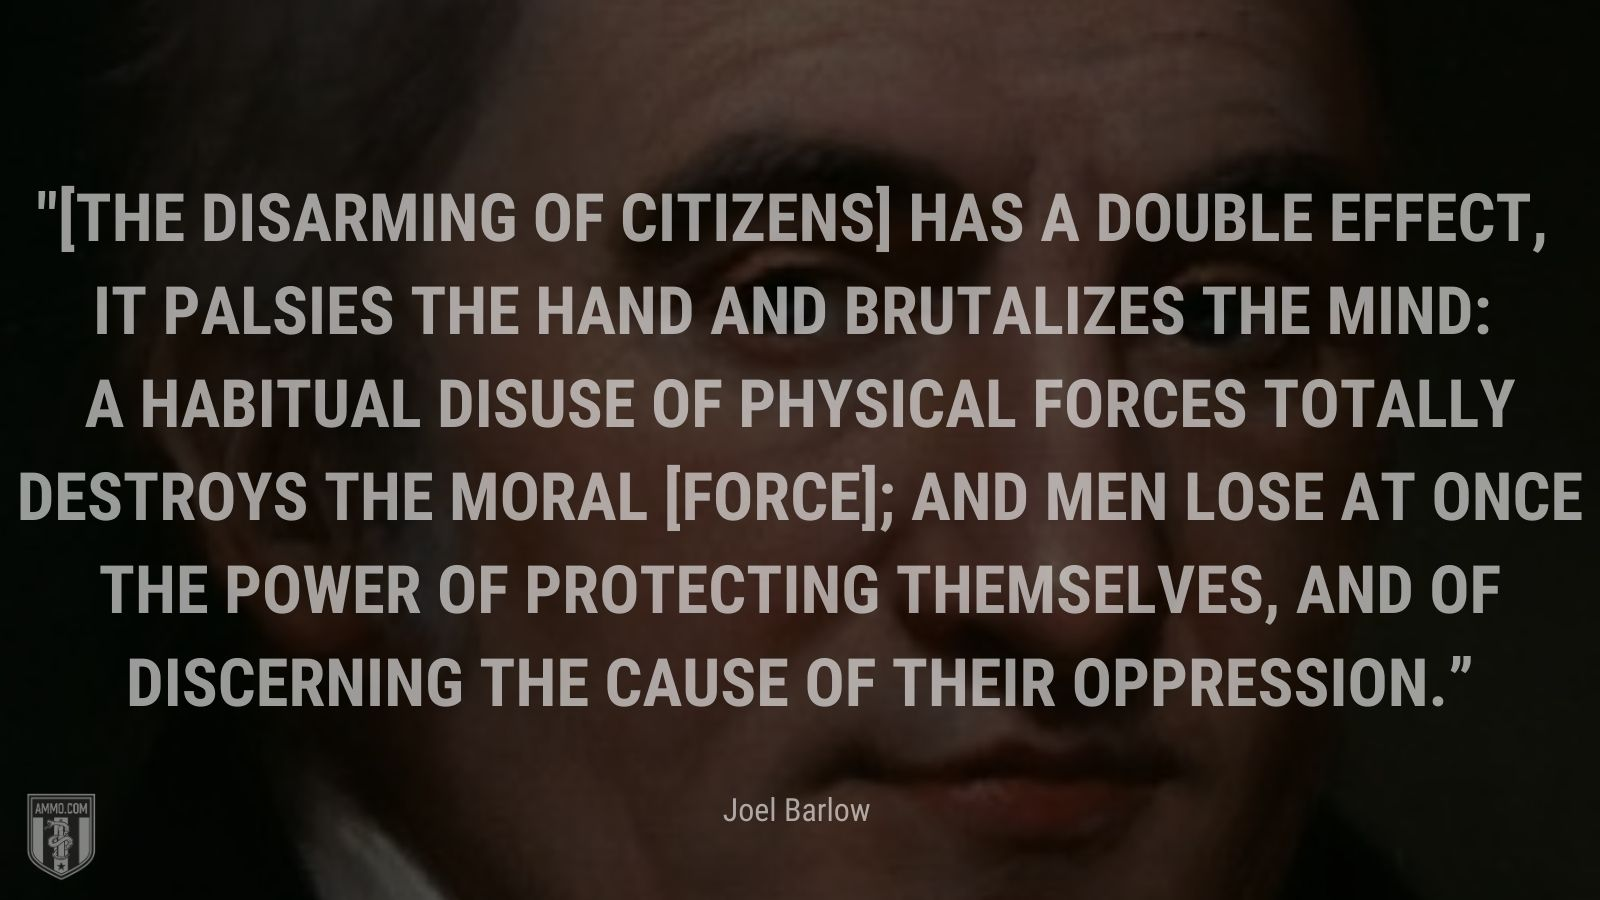 """""""[The disarming of citizens] has a double effect, it palsies the hand and brutalizes the mind: a habitual disuse of physical forces totally destroys the moral [force]; and men lose at once the power of protecting themselves, and of discerning the cause of their oppression."""" - Joel Barlow"""